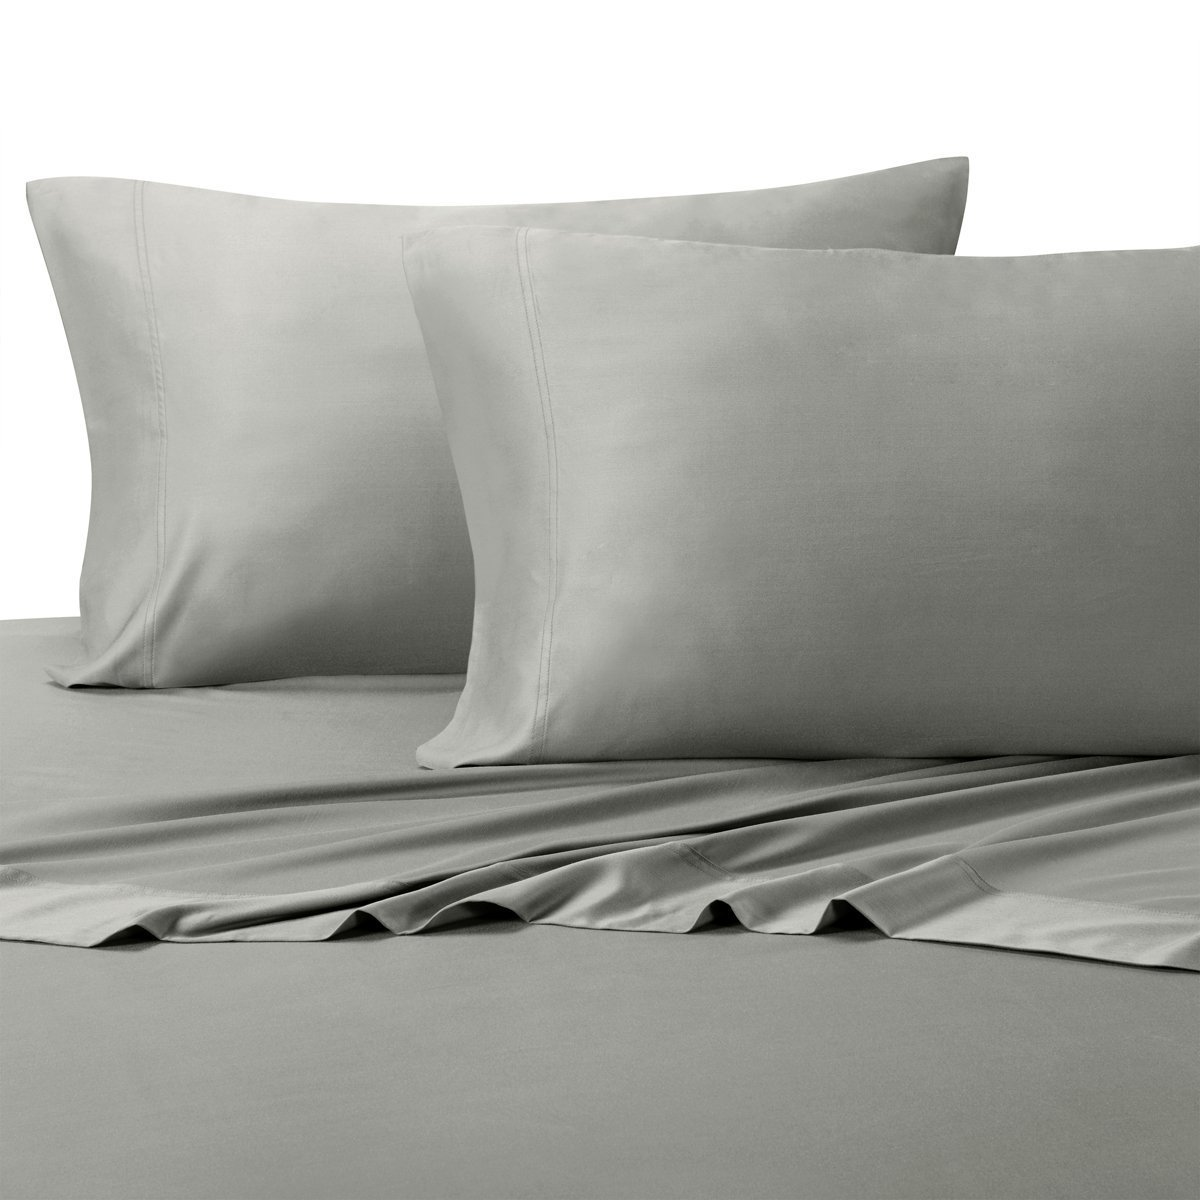 Luxury Heavy Weight 100% Natural Cotton Flannel Sheet Set [ Flat , Fitted & Pillow Cases ] - California King - Gray